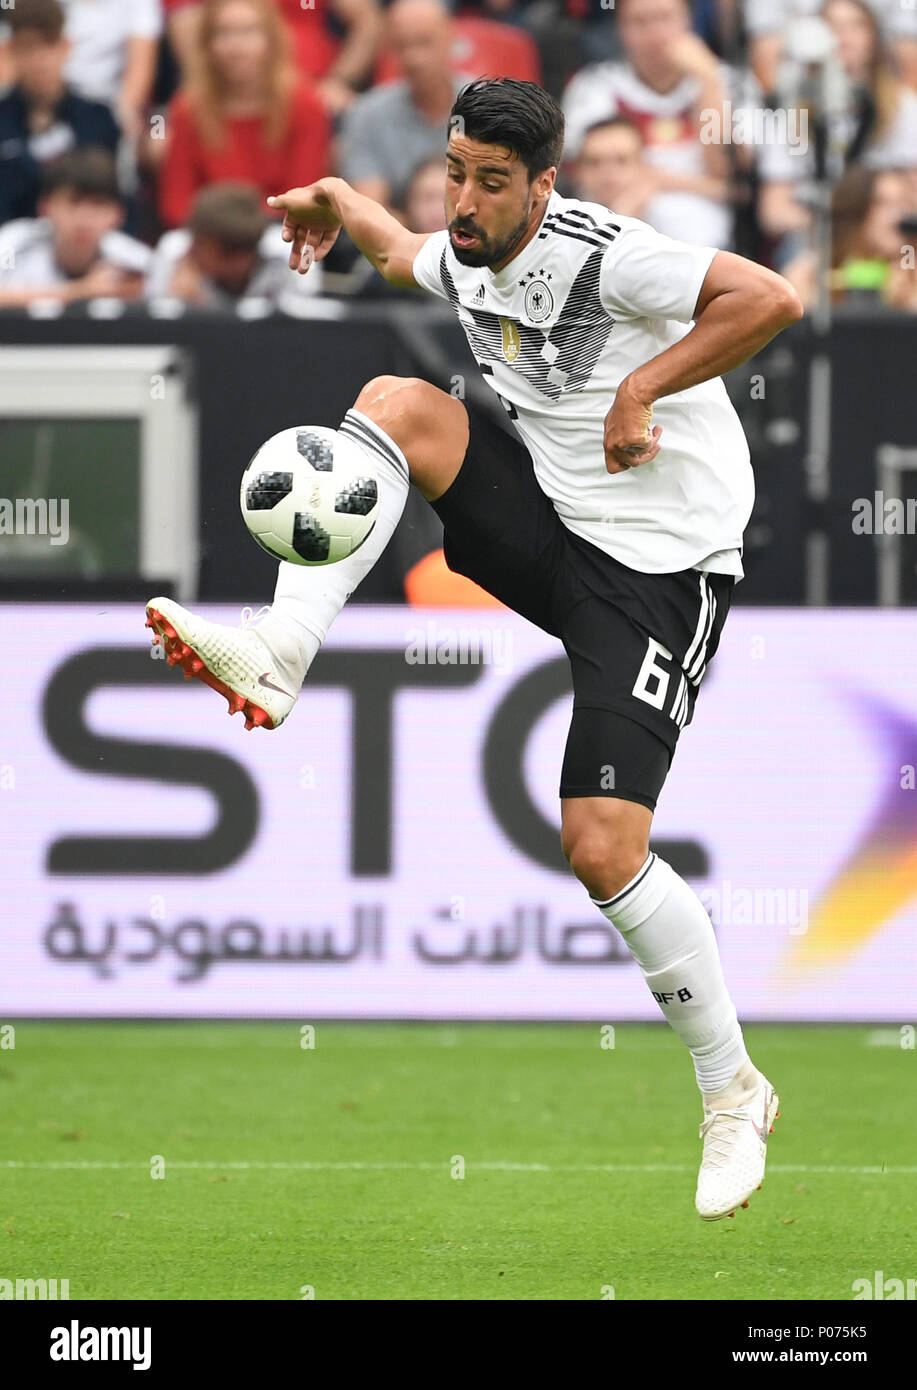 08 June 2018, Germany, Leverkusen: Soccer, international, Germany vs Saudi Arabia at the BayArena. Germany's Sami Khedira. Photo: Ina Fassbender/dpa Stock Photo